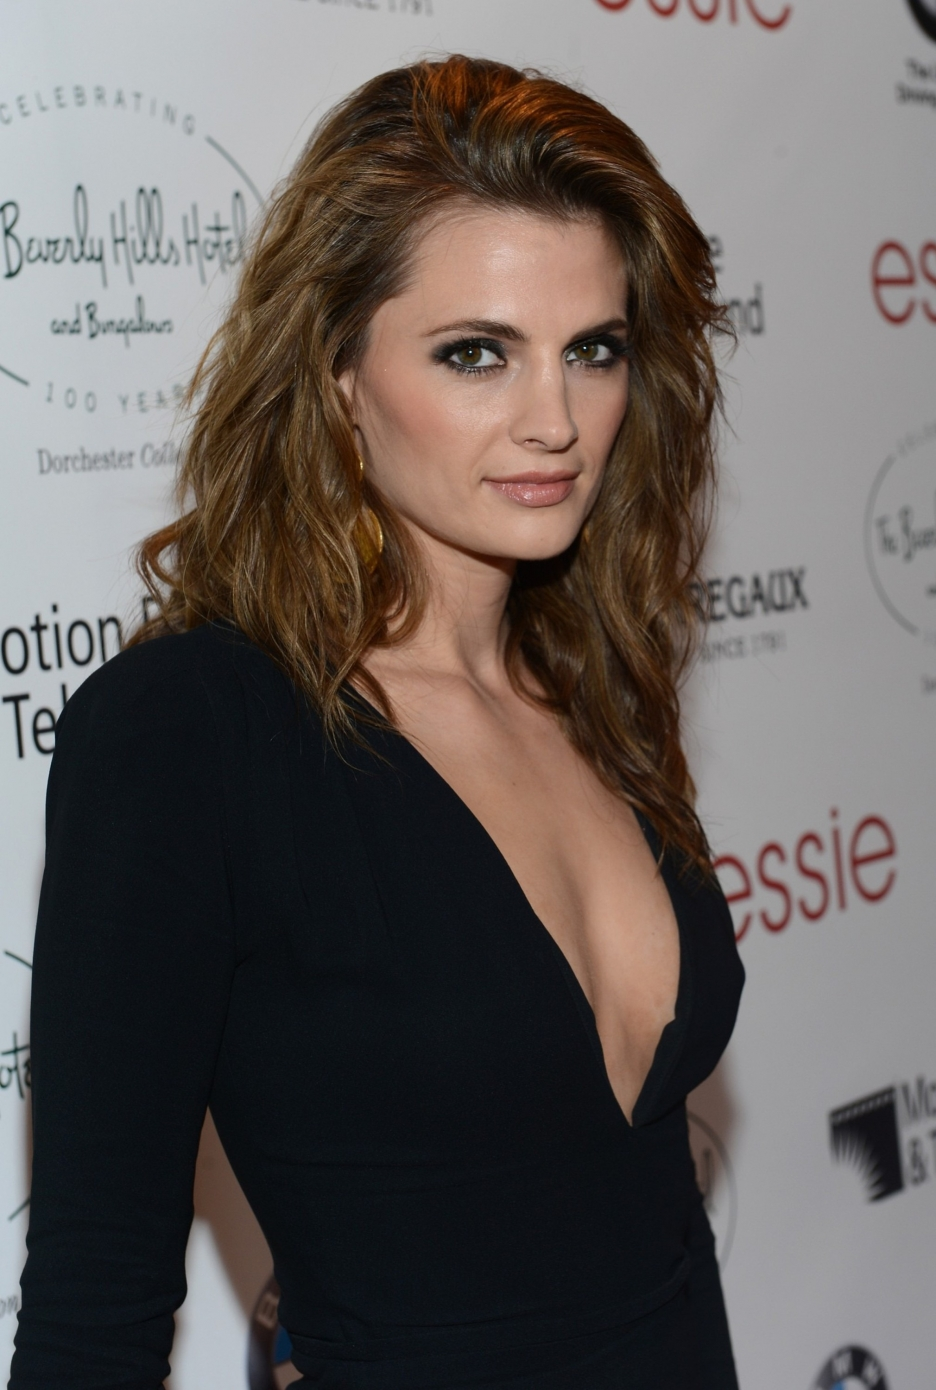 Stana katic married or single